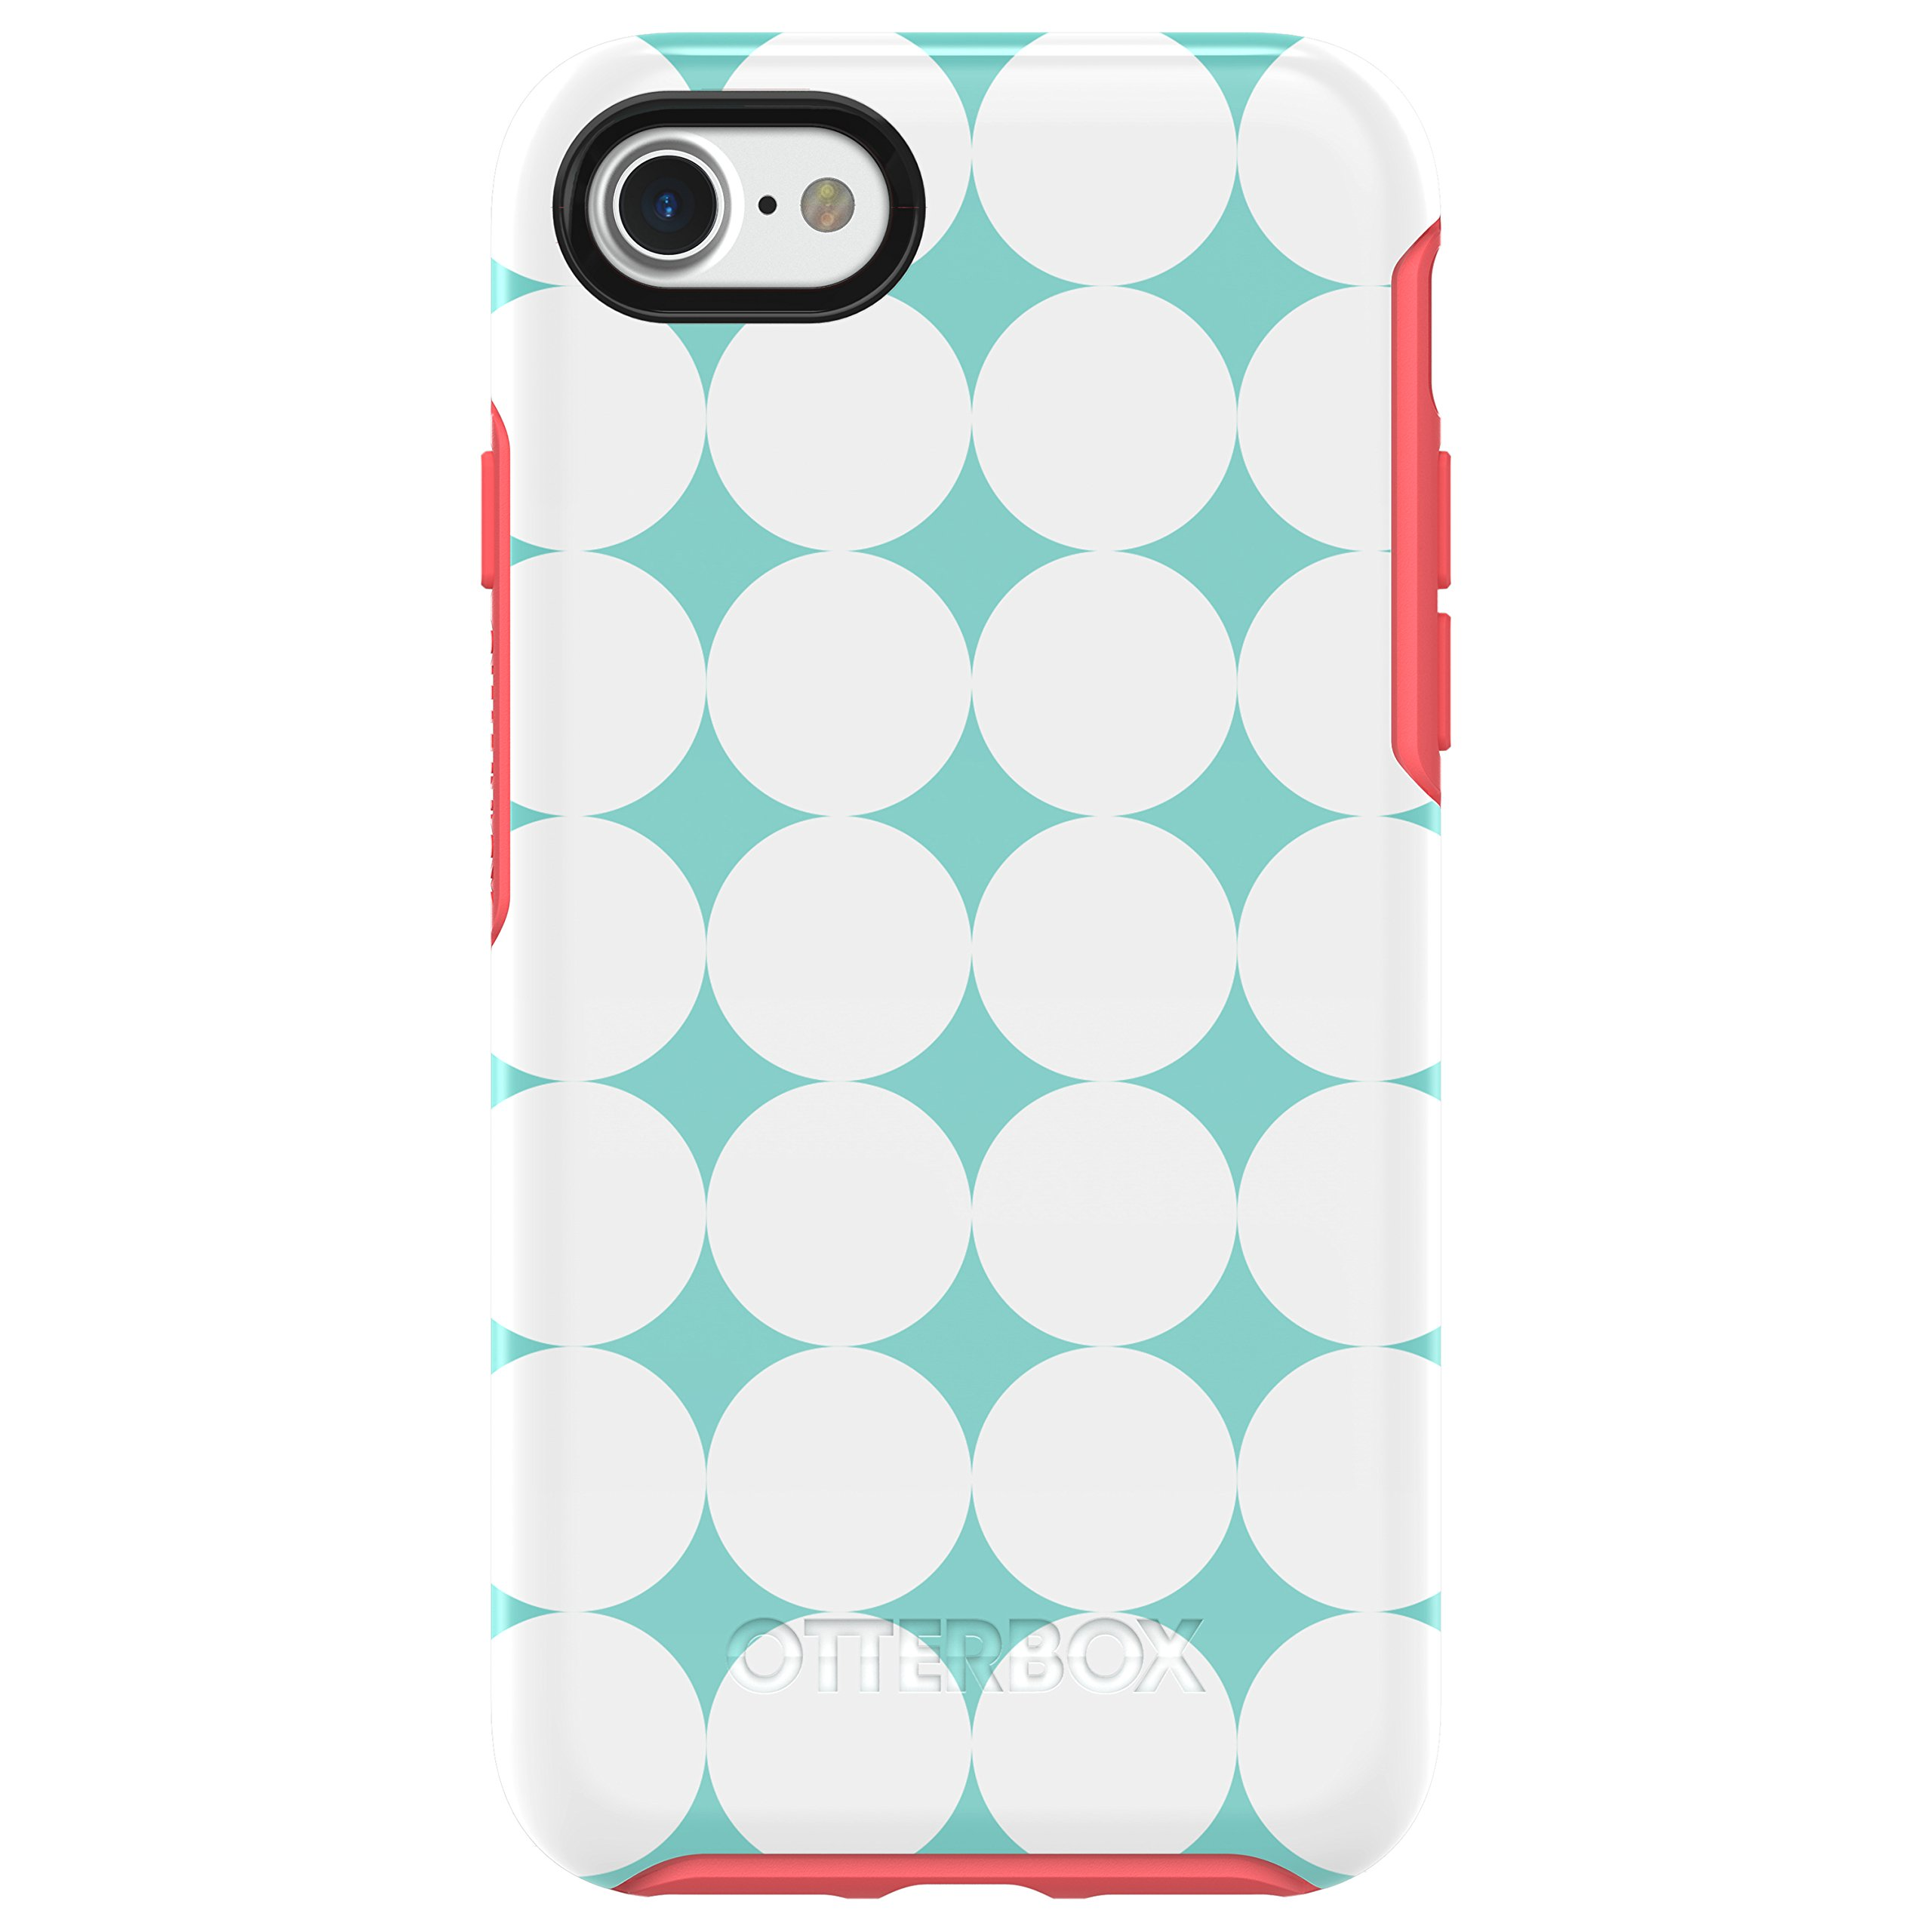 OtterBox SYMMETRY SERIES Case for iPhone 8 & iPhone 7 (NOT Plus) - Retail Packaging - HALFTONE (AQUA MINT/CANDY PINK/HALFTONE GRAPHIC)